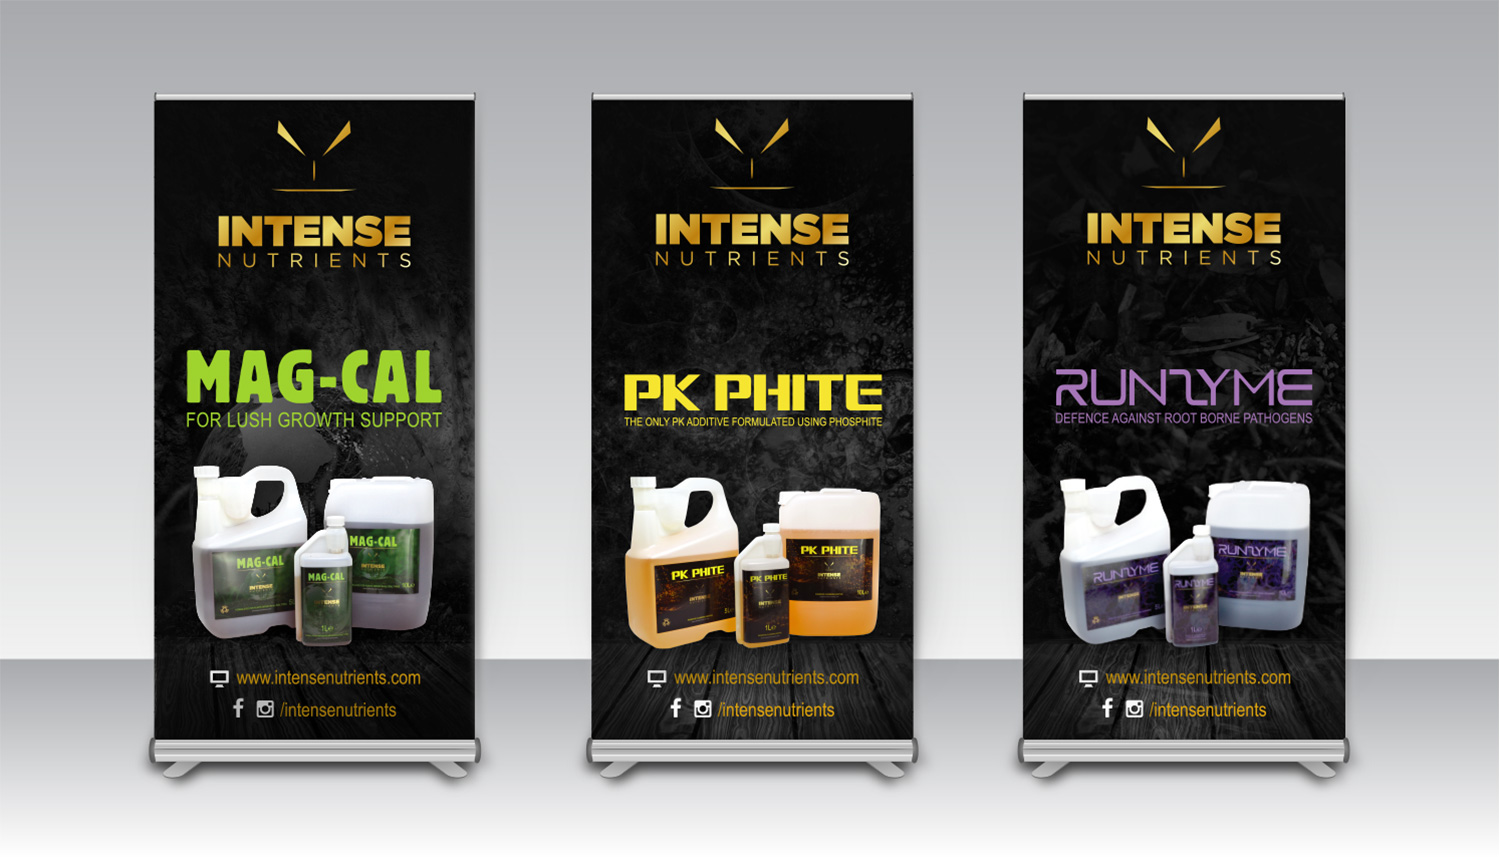 Intense-nutrients-roll-banner-design-3.jpg